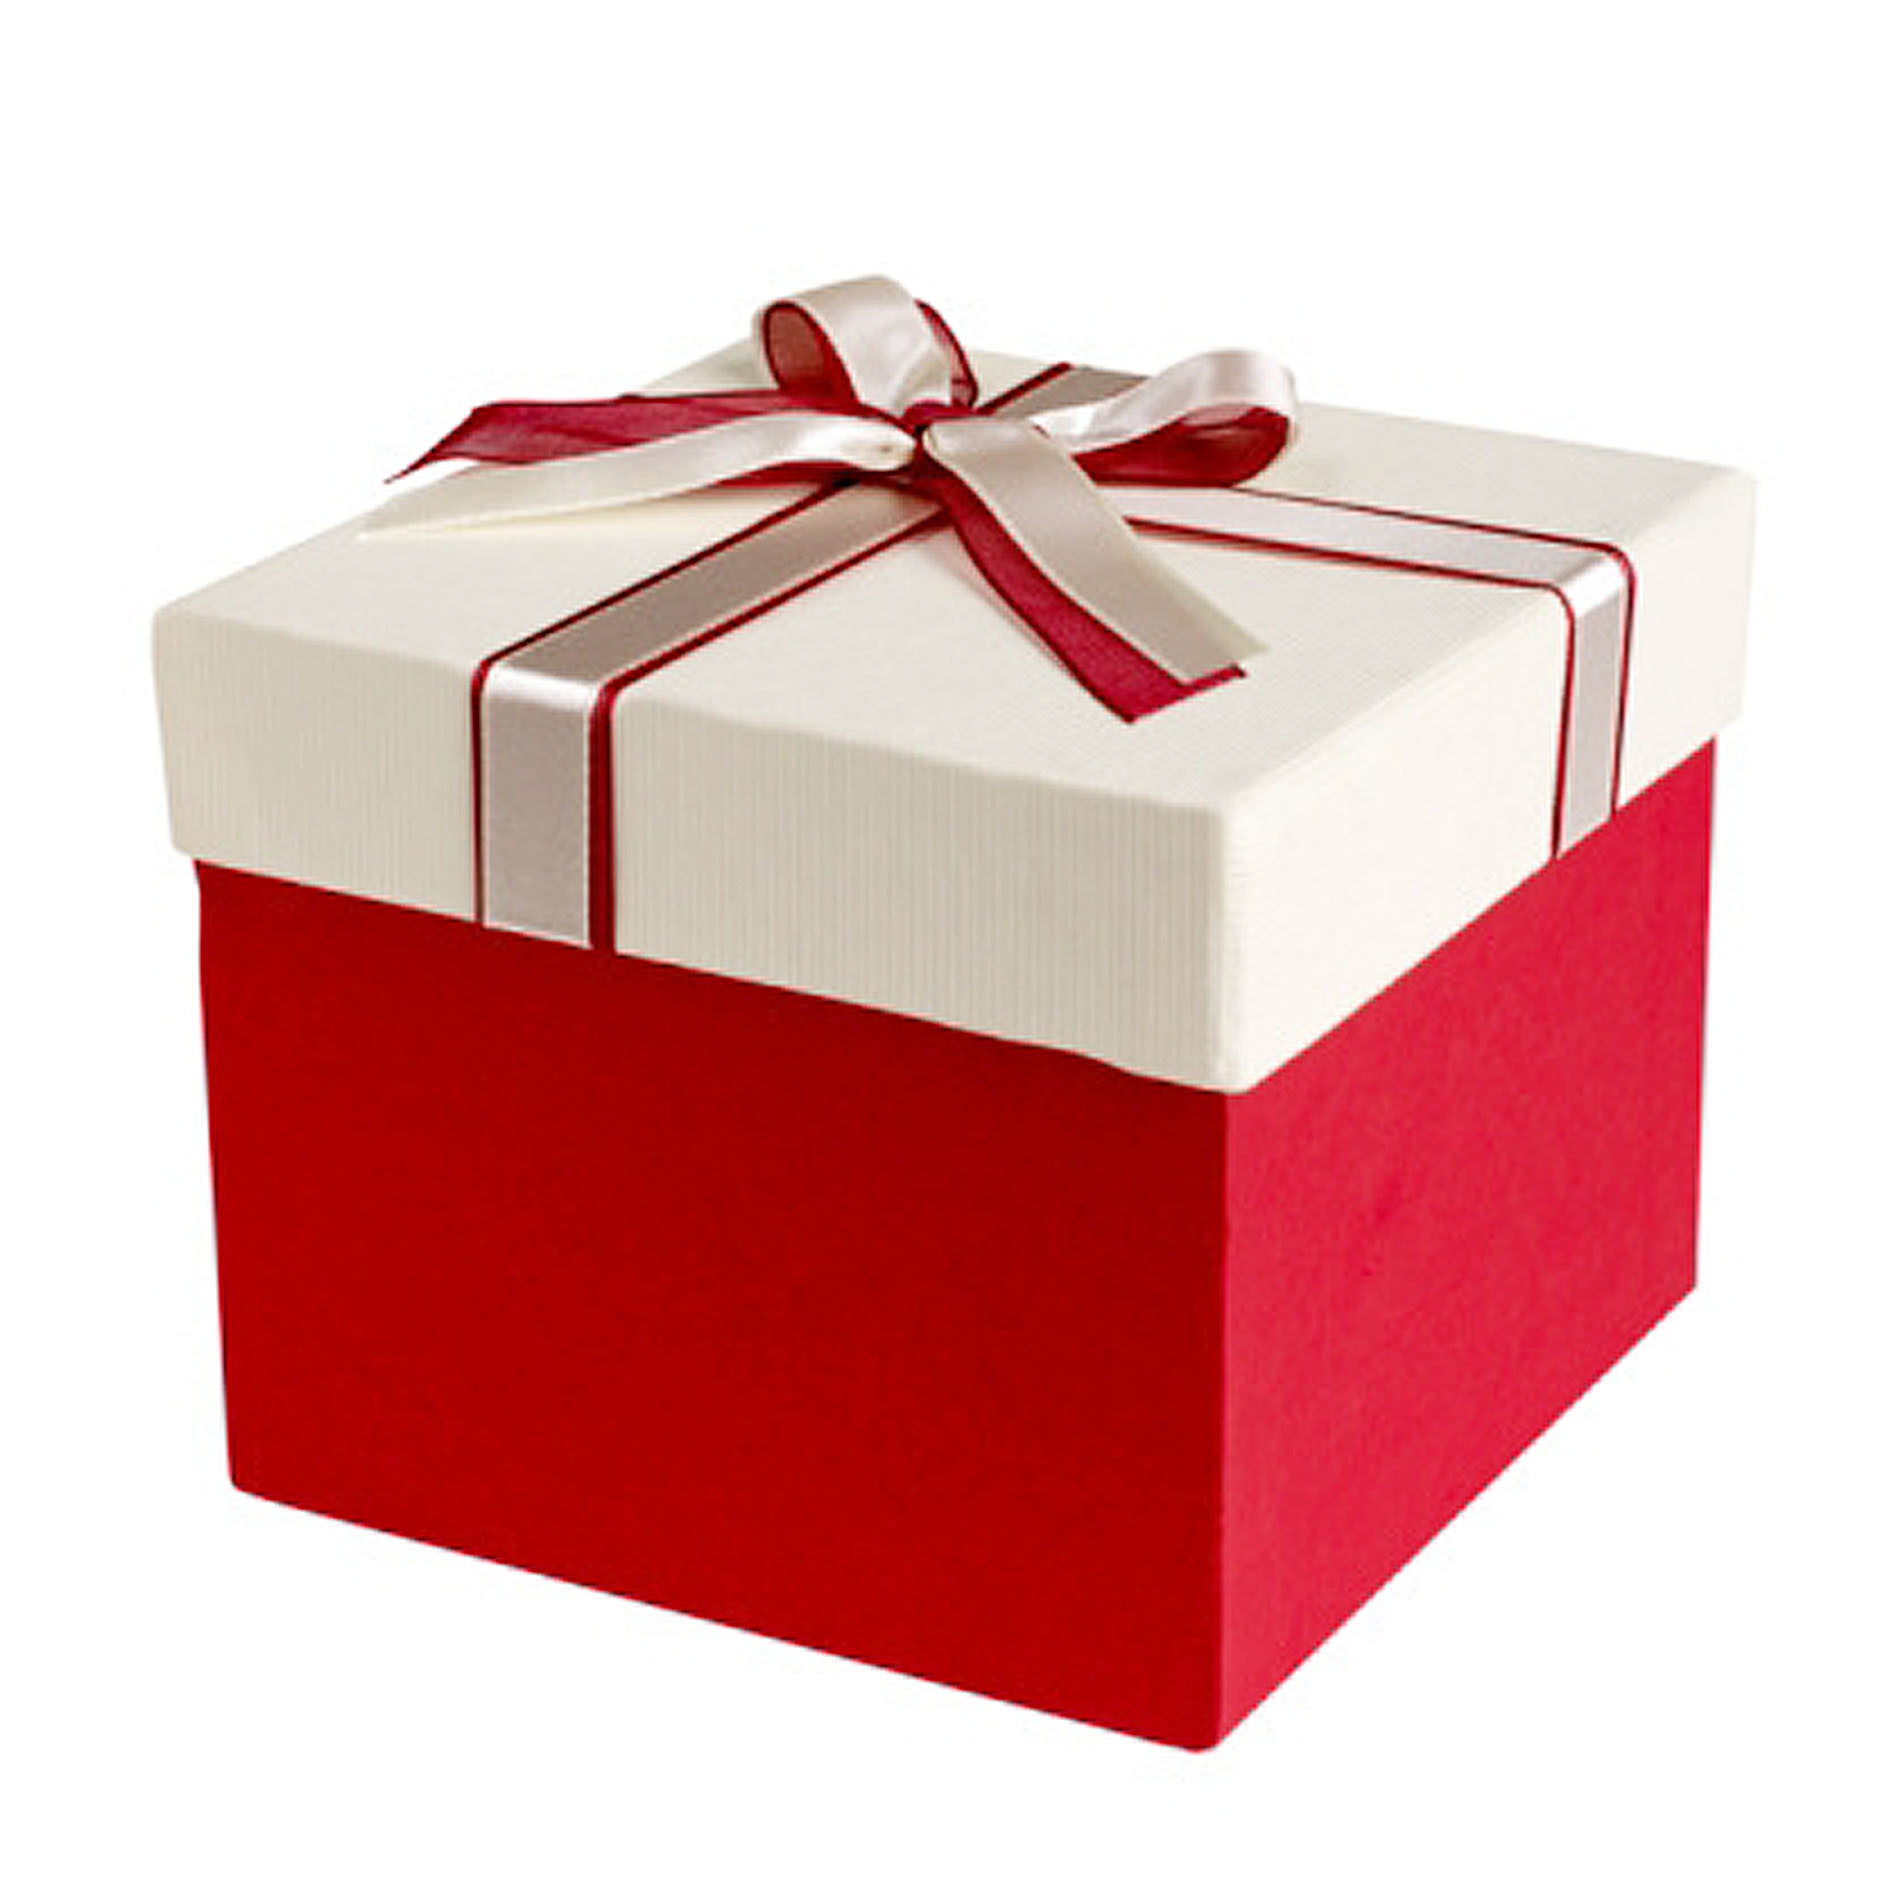 Free box. Wrapping paper or gift bag costs about $4. $4 per item, which includes gift wrap, a bow, and a personalized message. Kohl's. Boxes available free during the holidays.